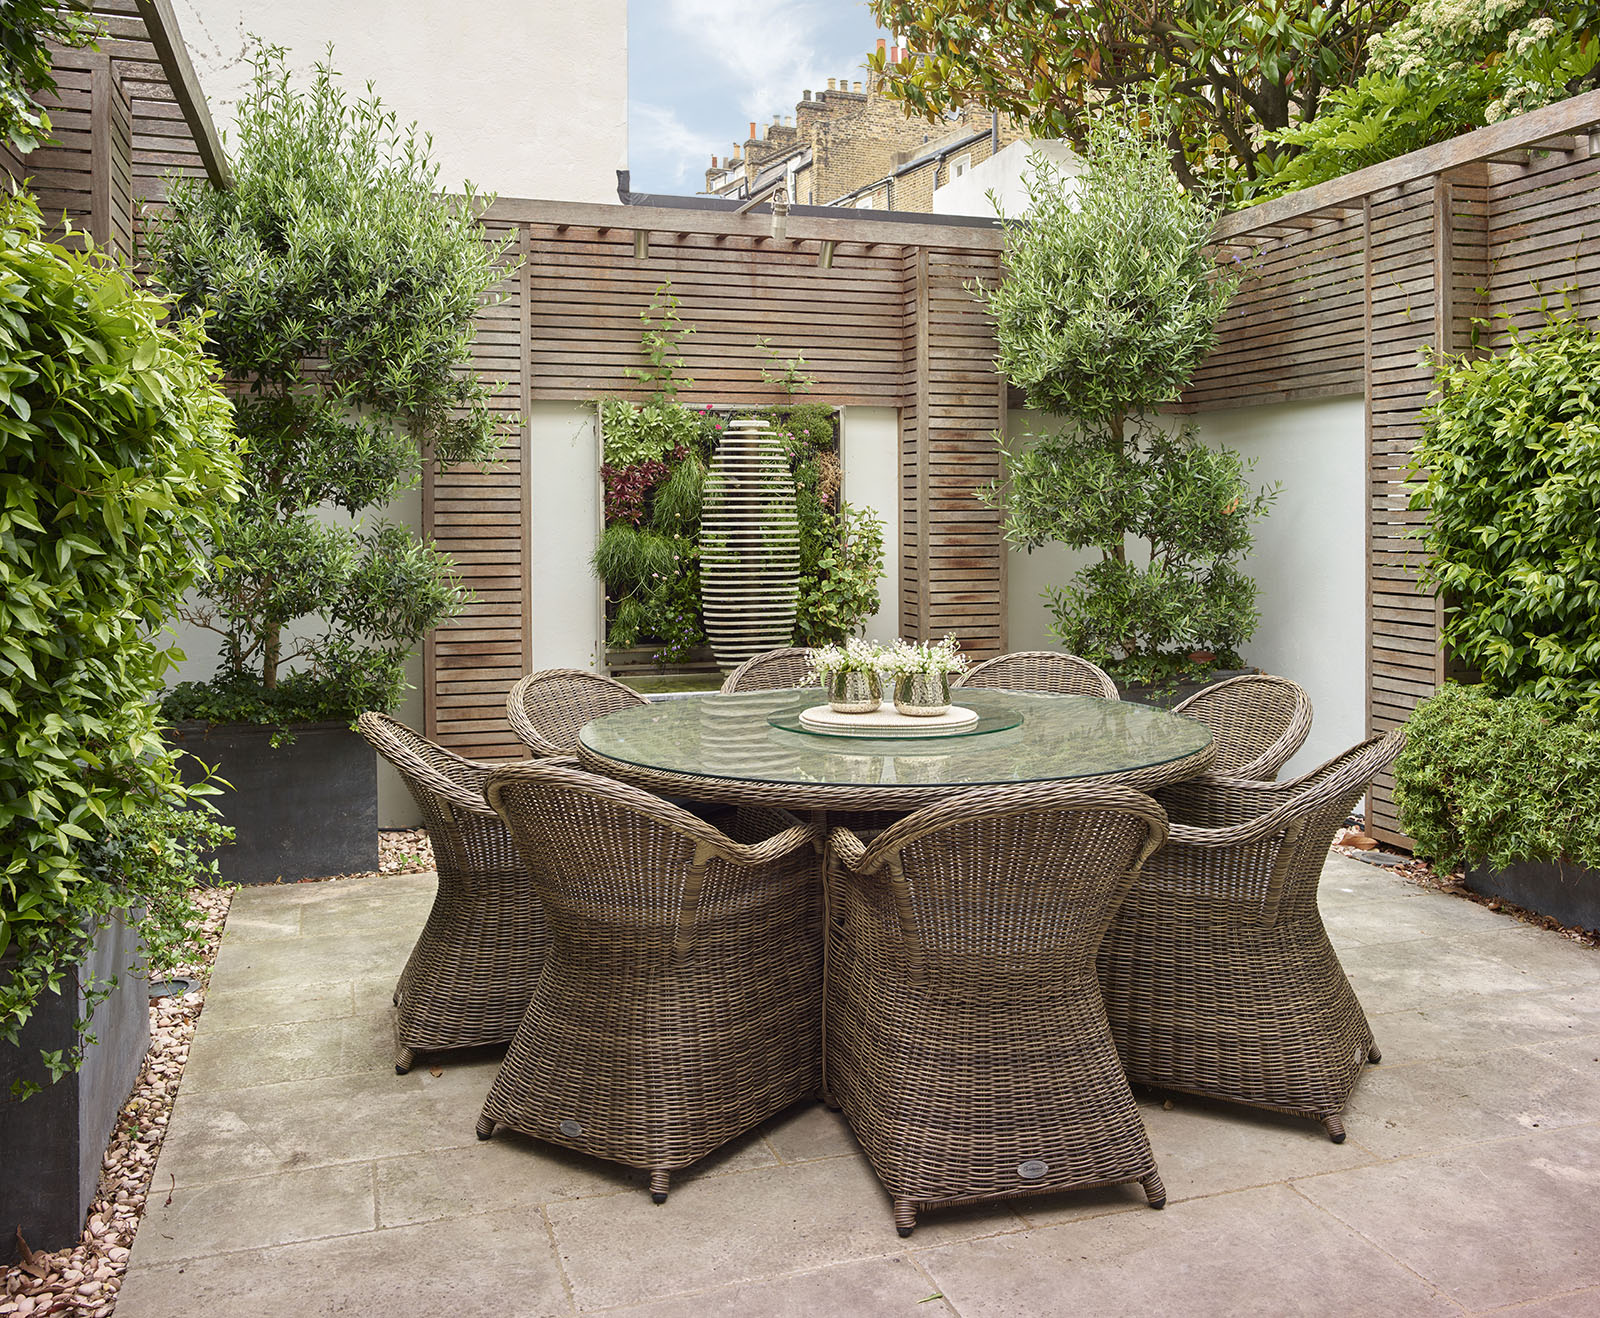 Chelsea Townhouse Garden Dining Table